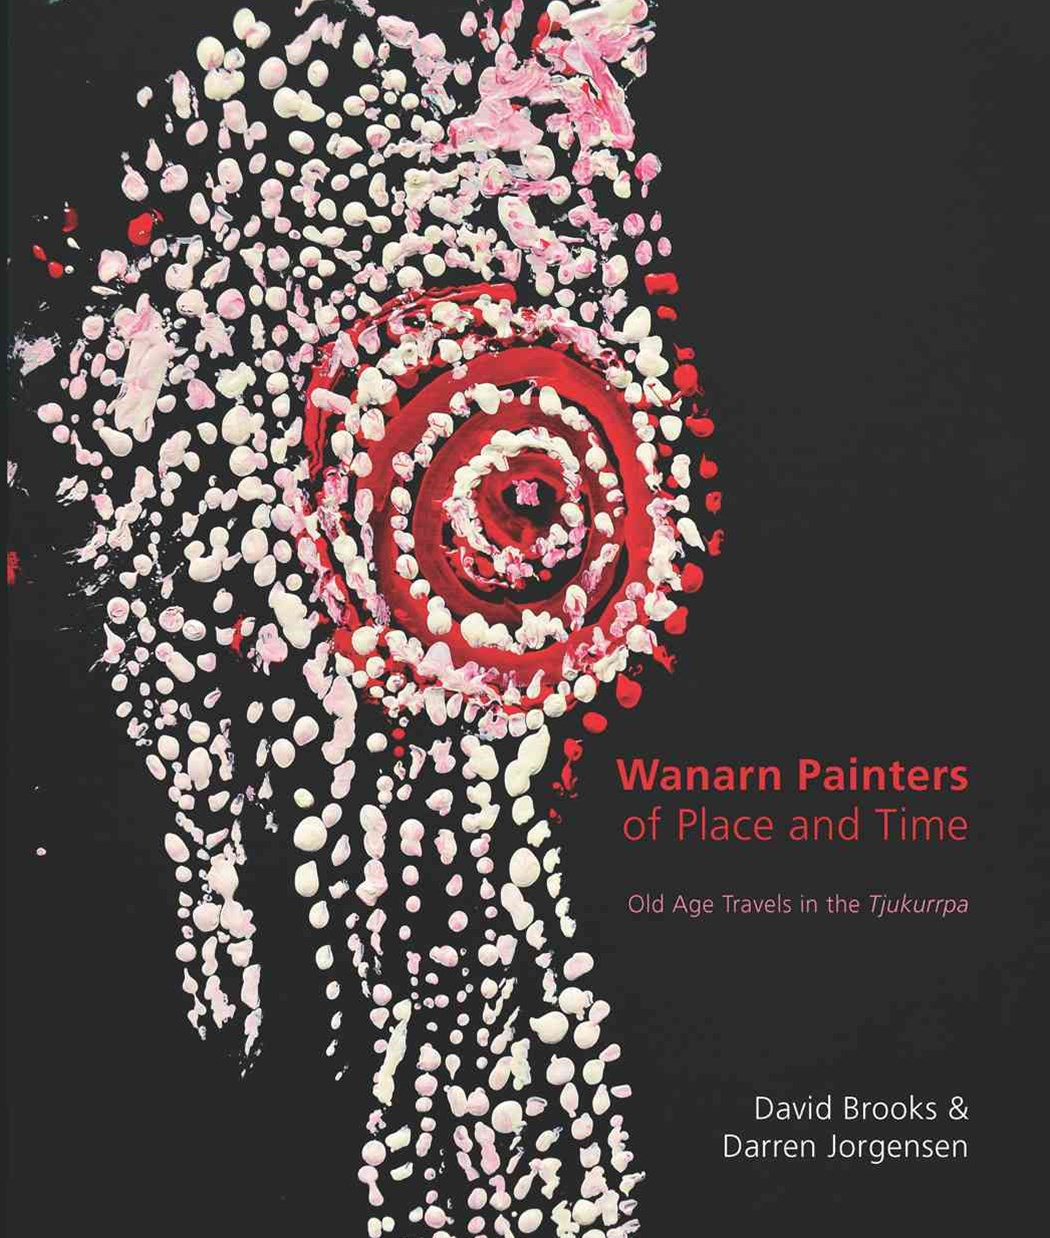 Wanarn Painters of Place and Time